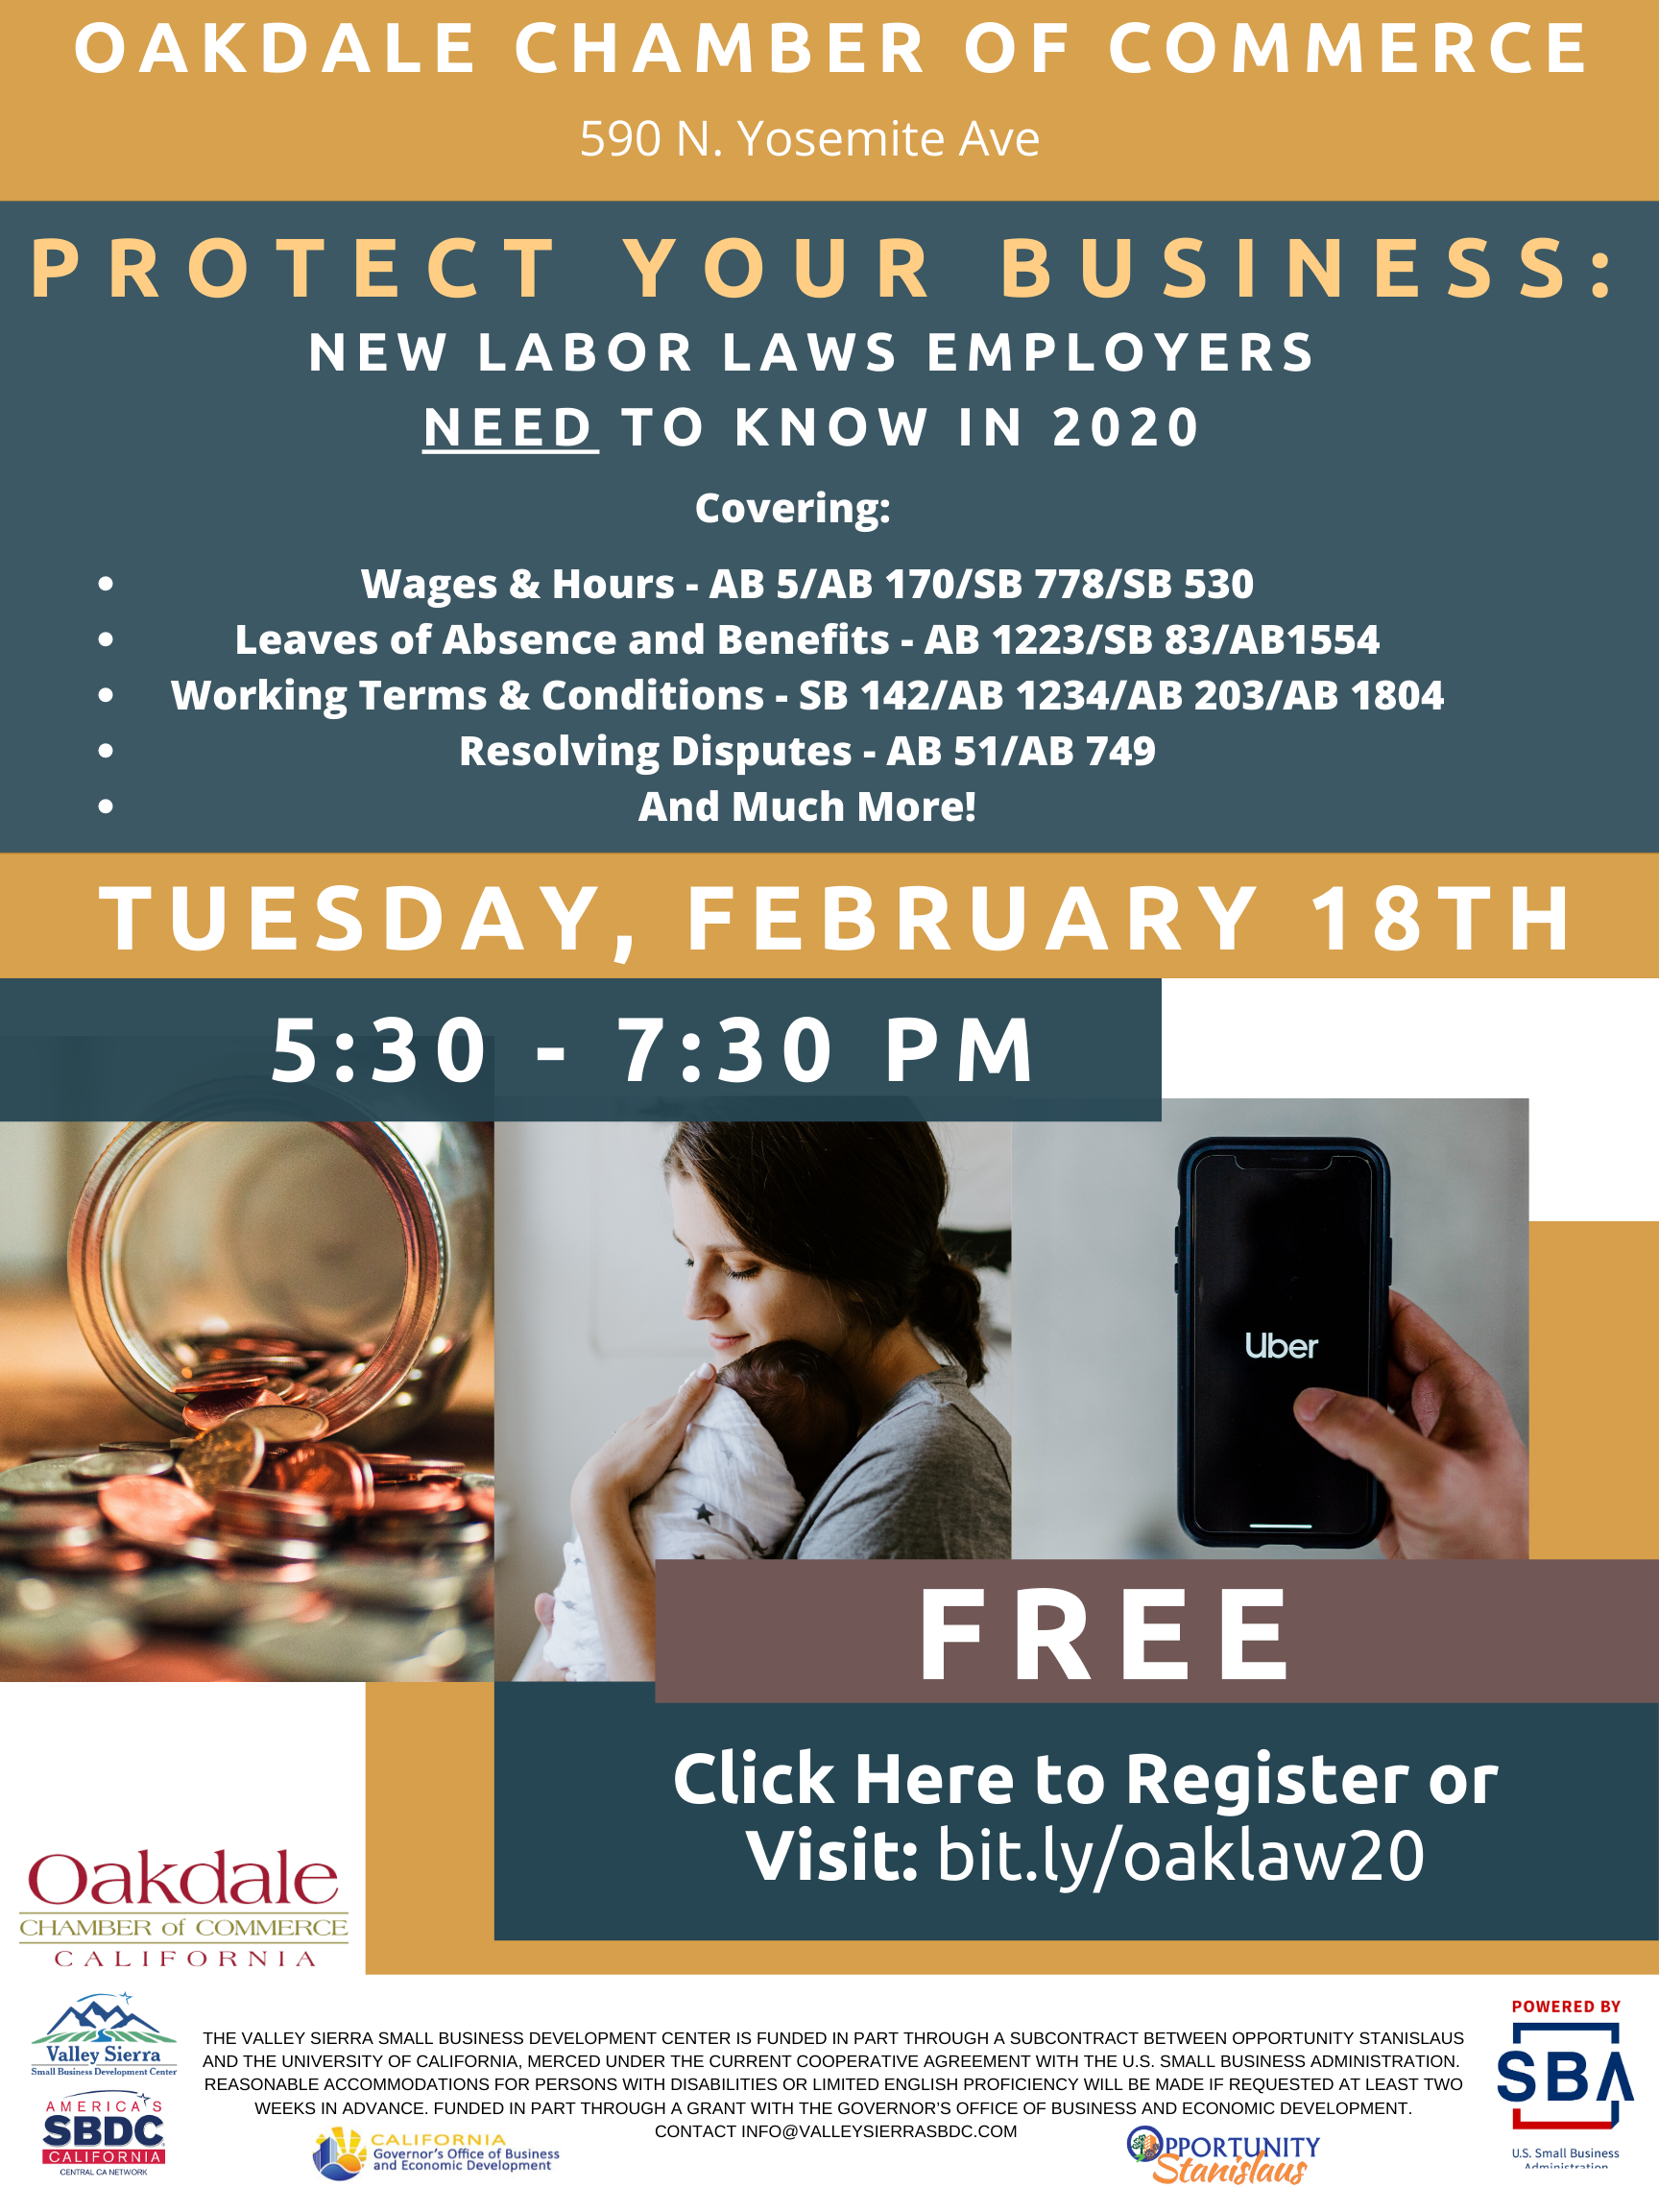 Event Flyer, Oakdale Employment Law Updates for 2020, Oakdale Chamber of Commerce. 2/18/2020, FREE.